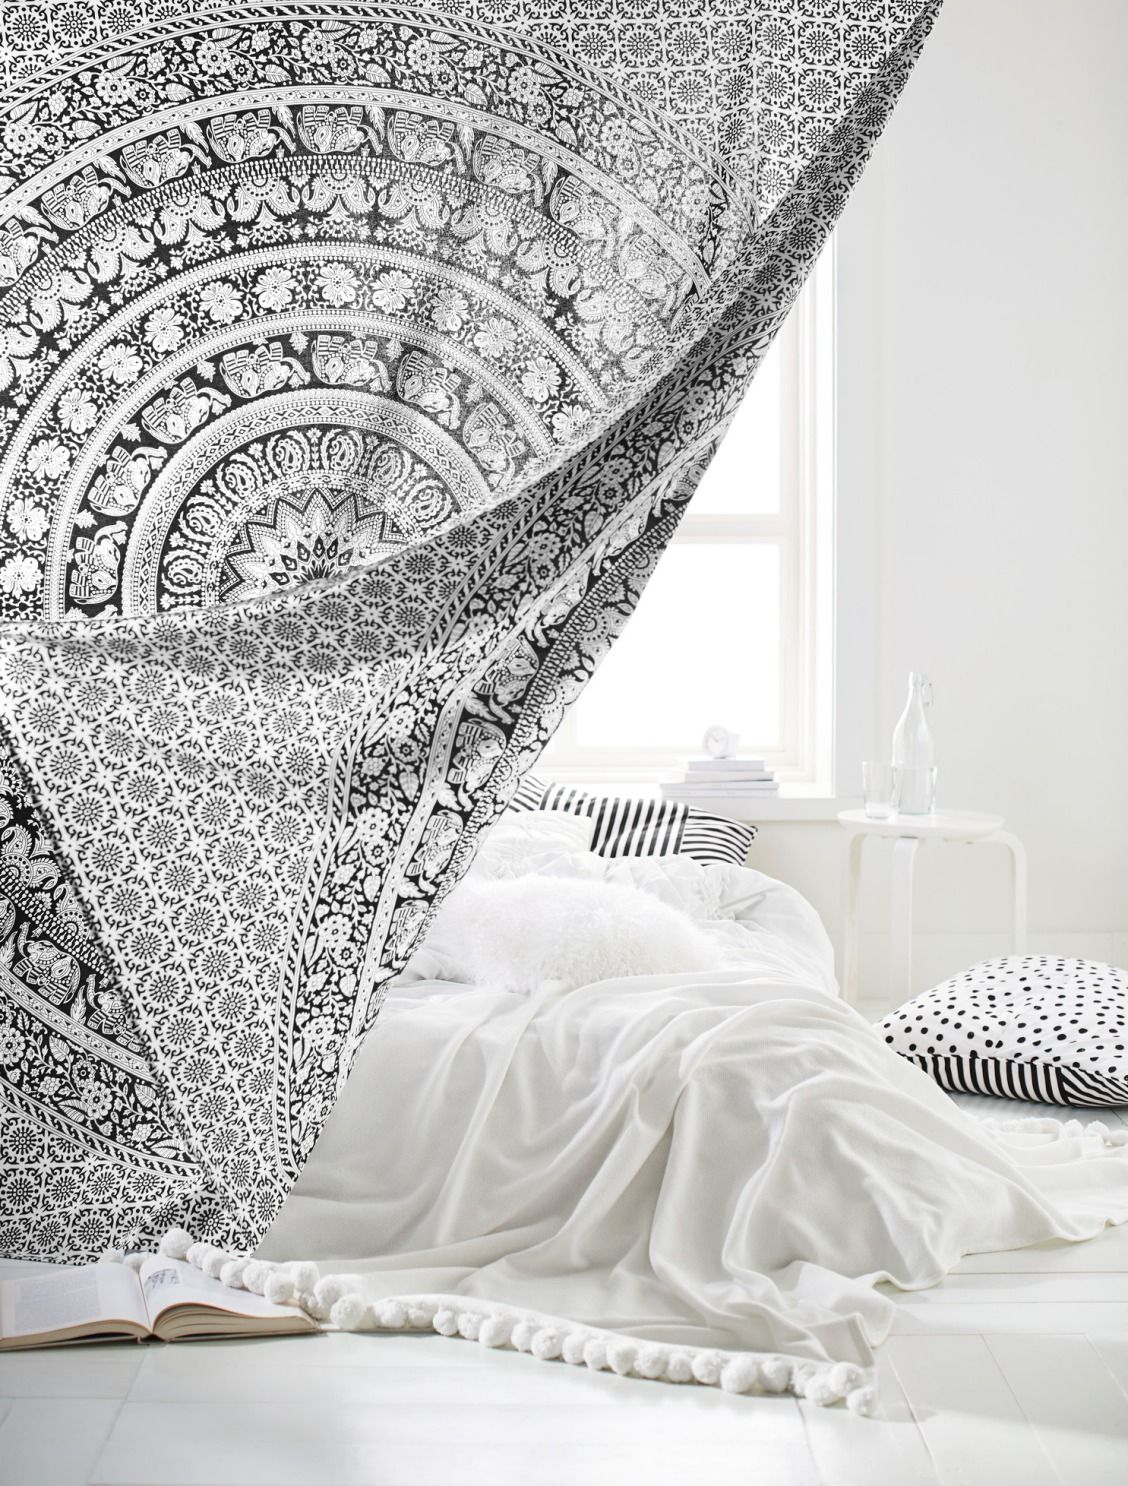 Printed Tapestry Black White With Images Tapestry Bedroom